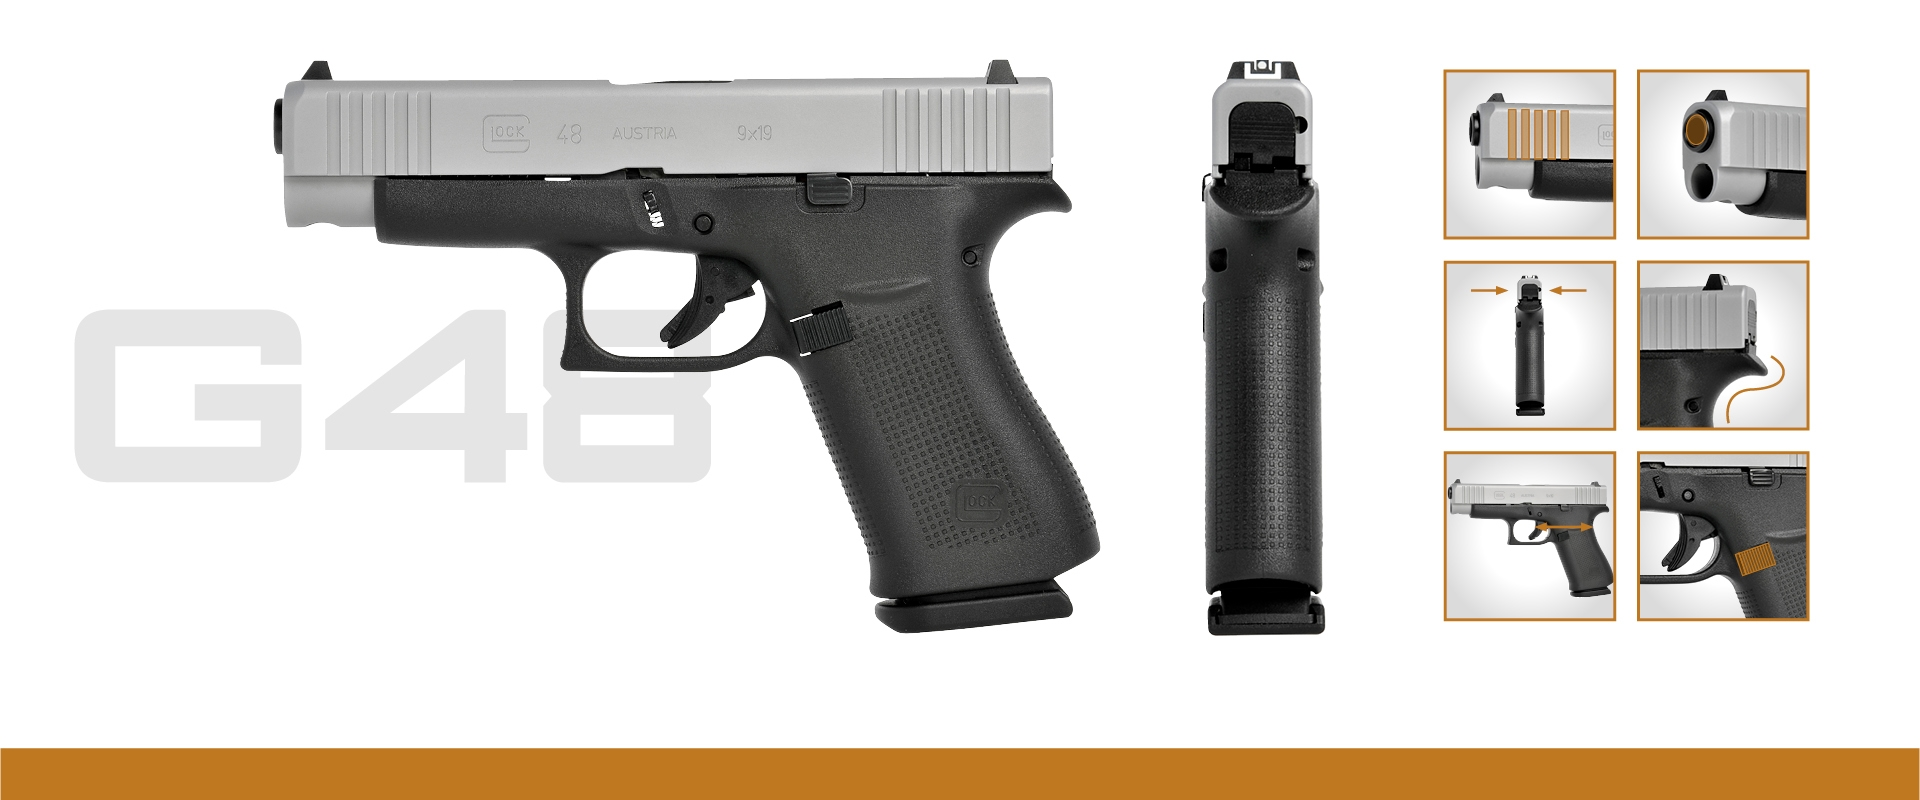 GLOCK G48 Features kopie